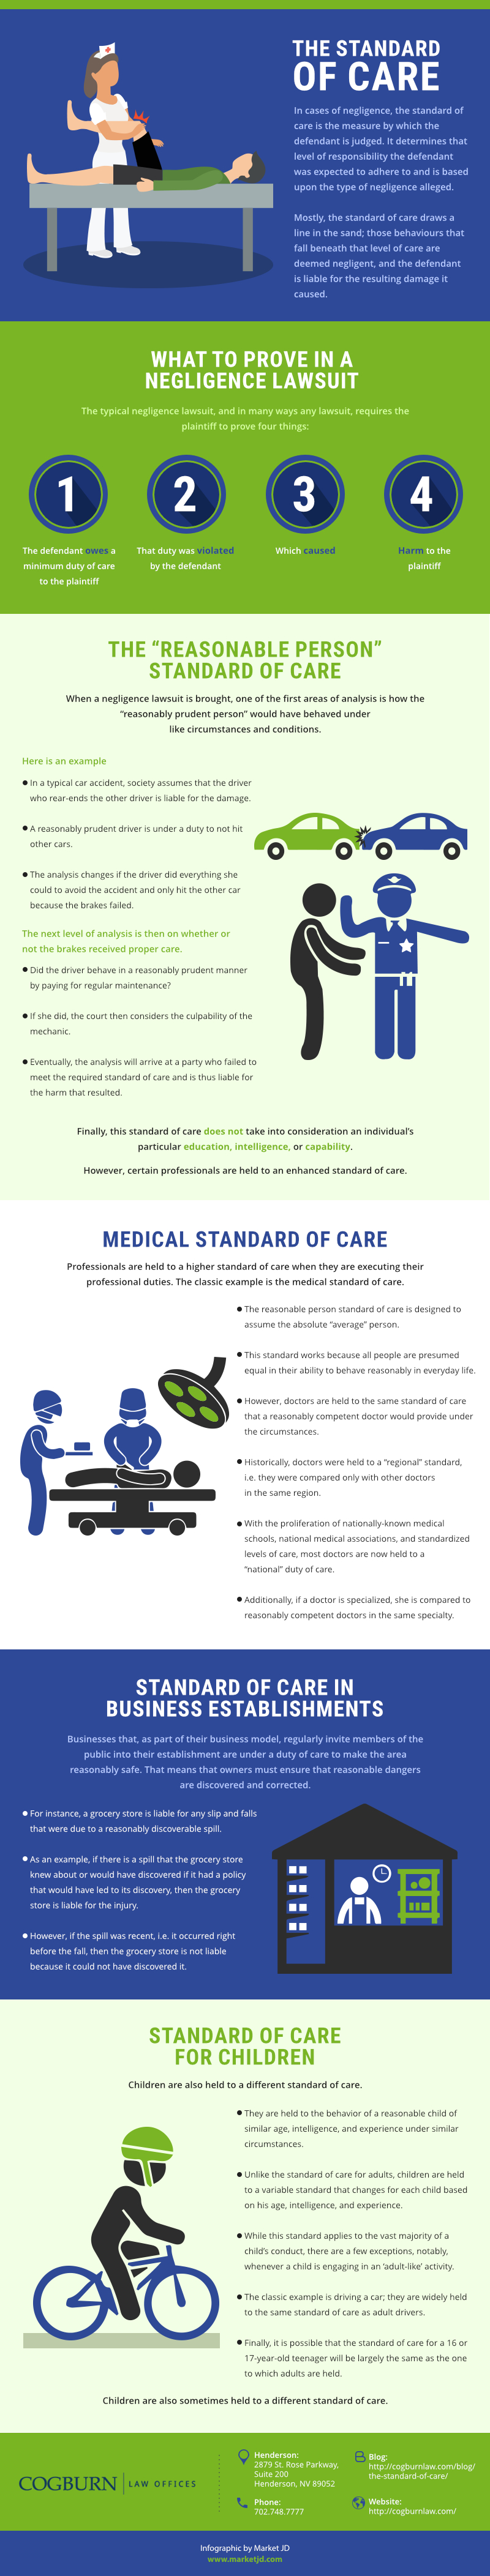 infographic_The Standard of Care in Negligence Lawsuits